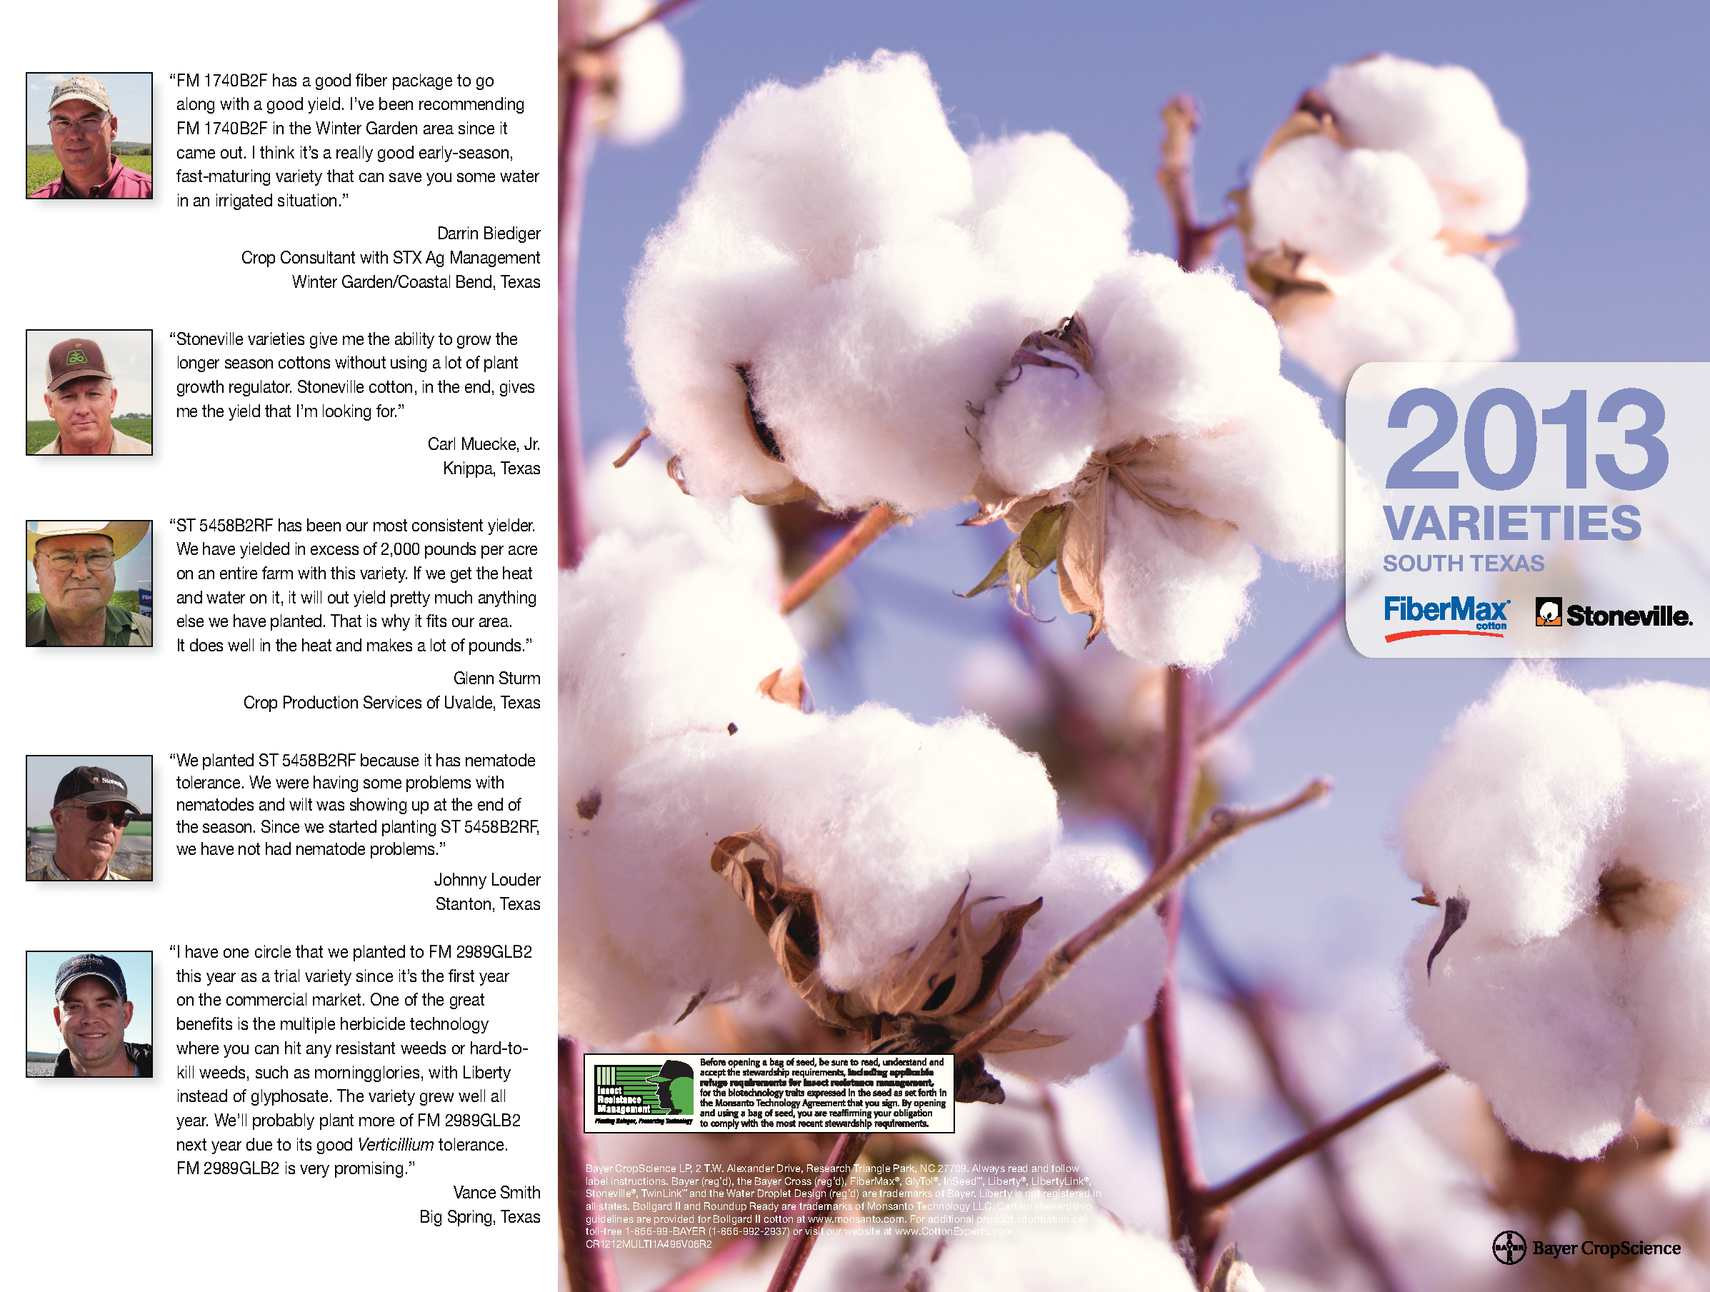 calaméo fibermax and stoneville south texas cotton varieties 2013